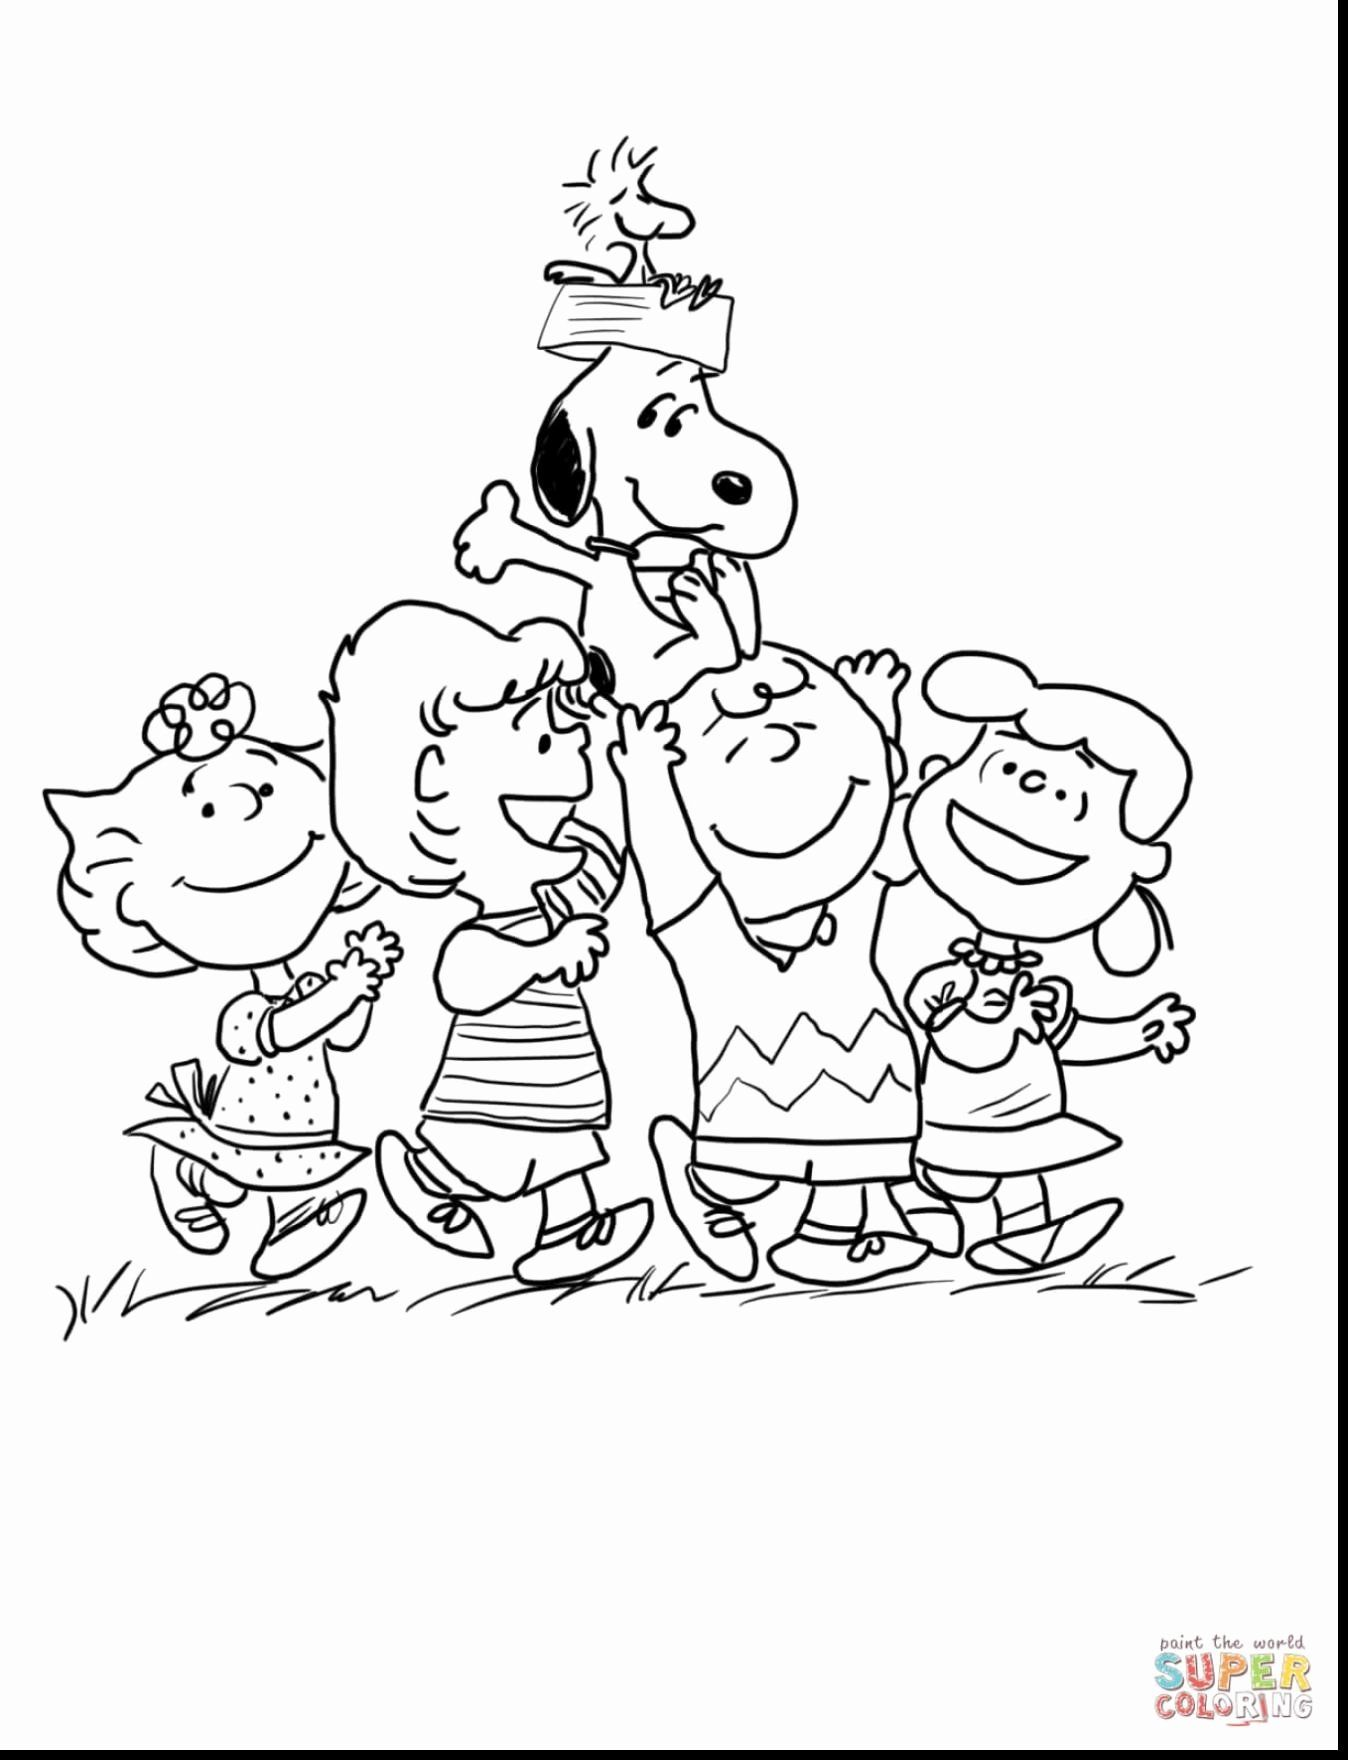 28 Charlie Brown Christmas Coloring Page in 2020